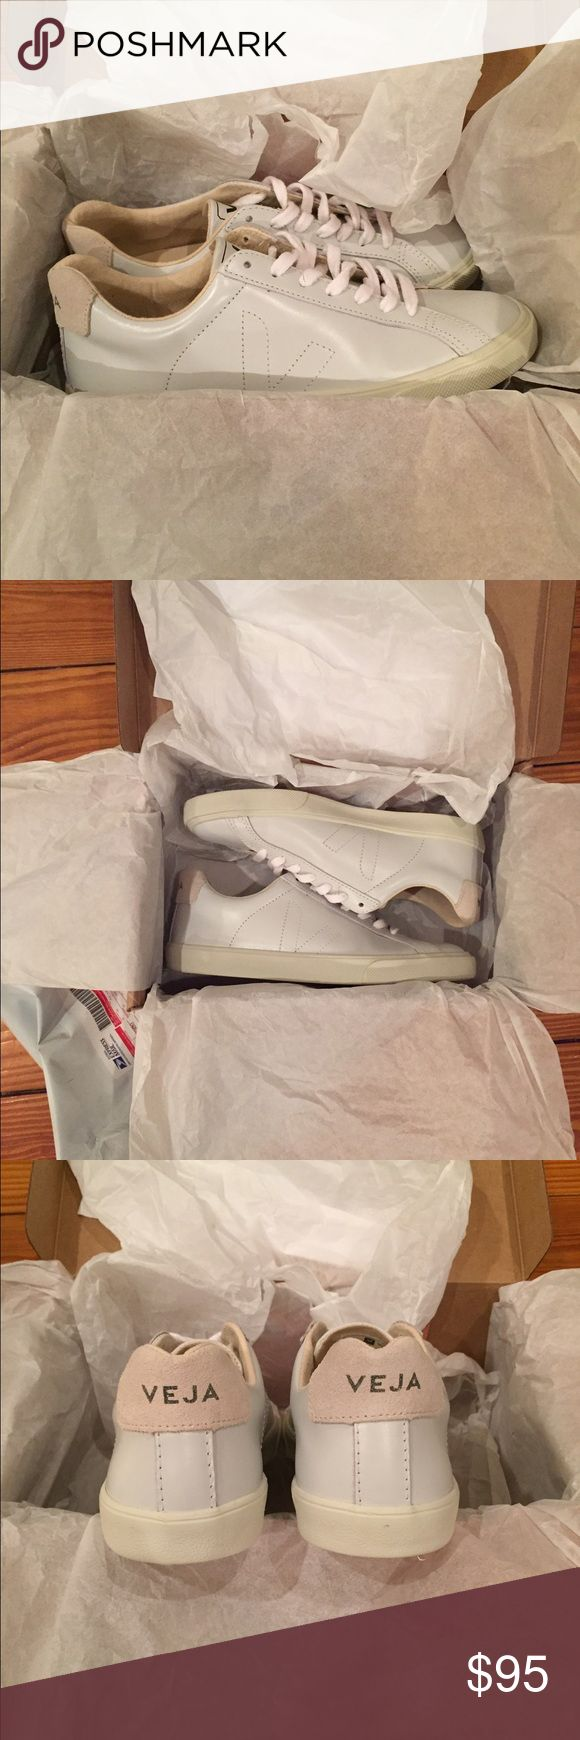 Veja Esplar Leather Extra White Sneaker - 7 Veja Esplar Leather Extra White Sneaker - 7 These are brand new and never worn. They are a size 37/US 7. They are too large for me and the shipping back to France is too expensive! Veja Shoes Sneakers